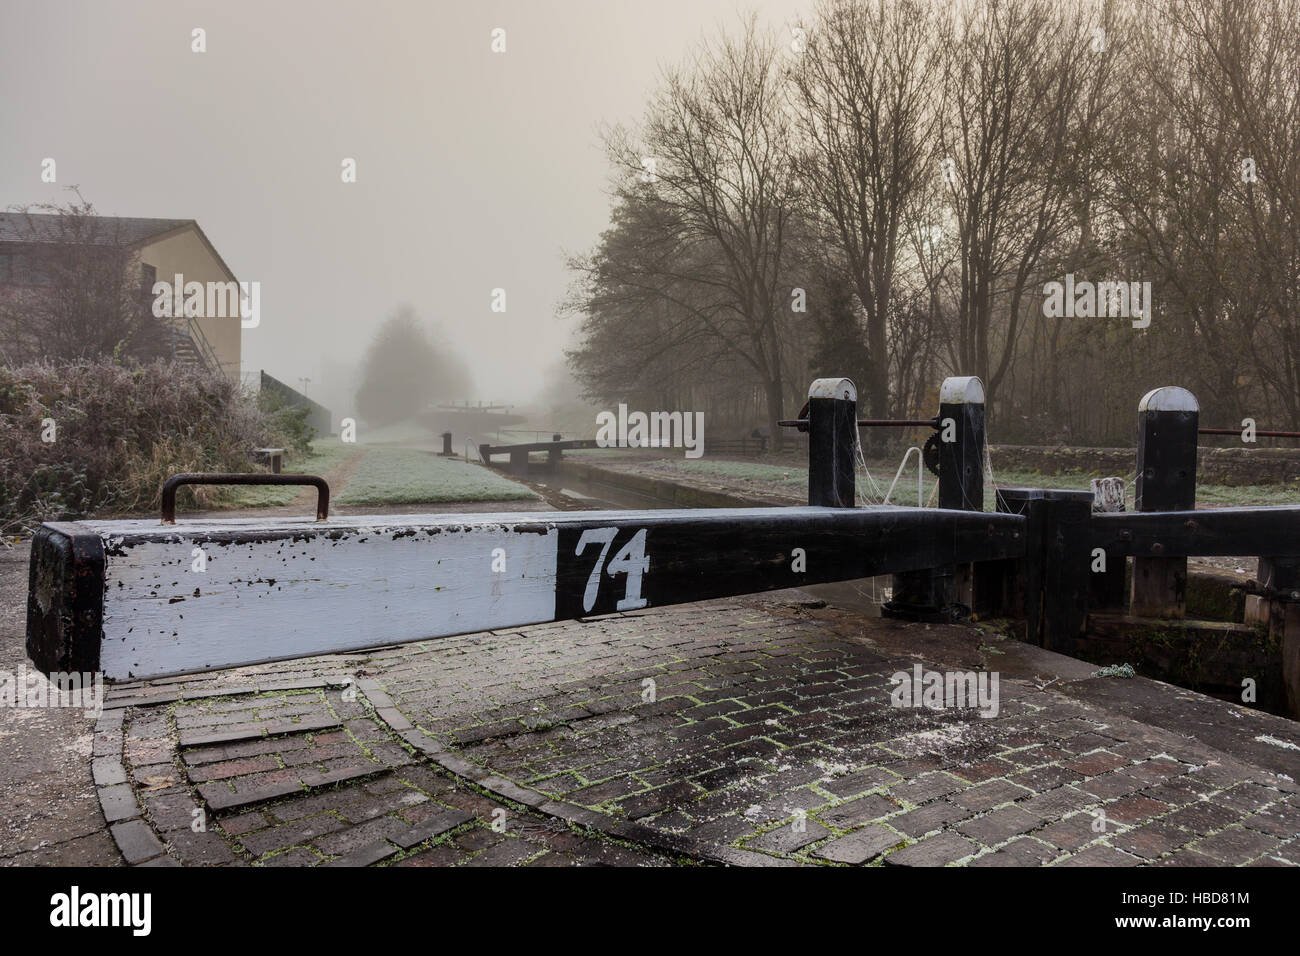 Lock 74 on the Trent & Mersey Canal in Middlewich, Cheshire - Stock Image